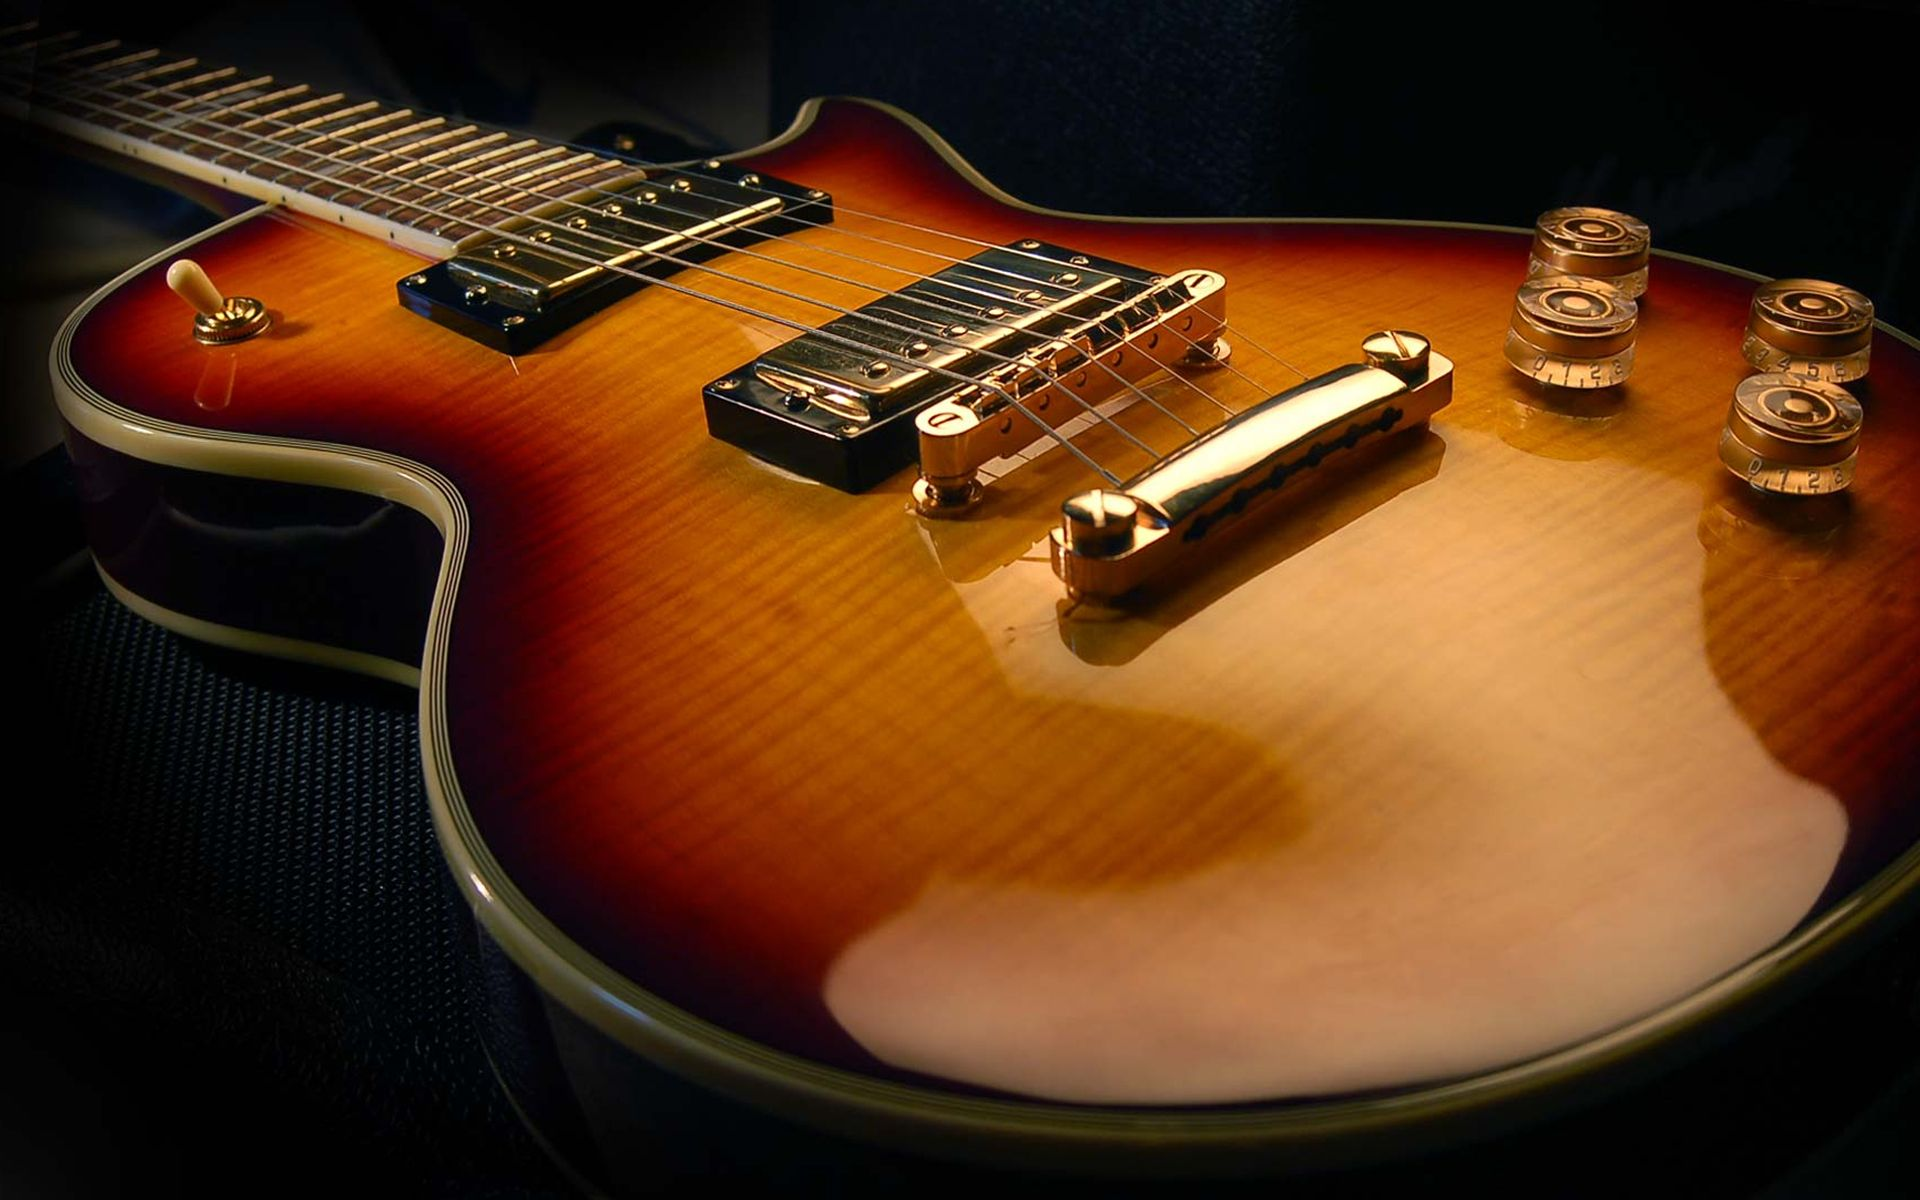 wallpapers of the day gibson guitar gibson guitar pic